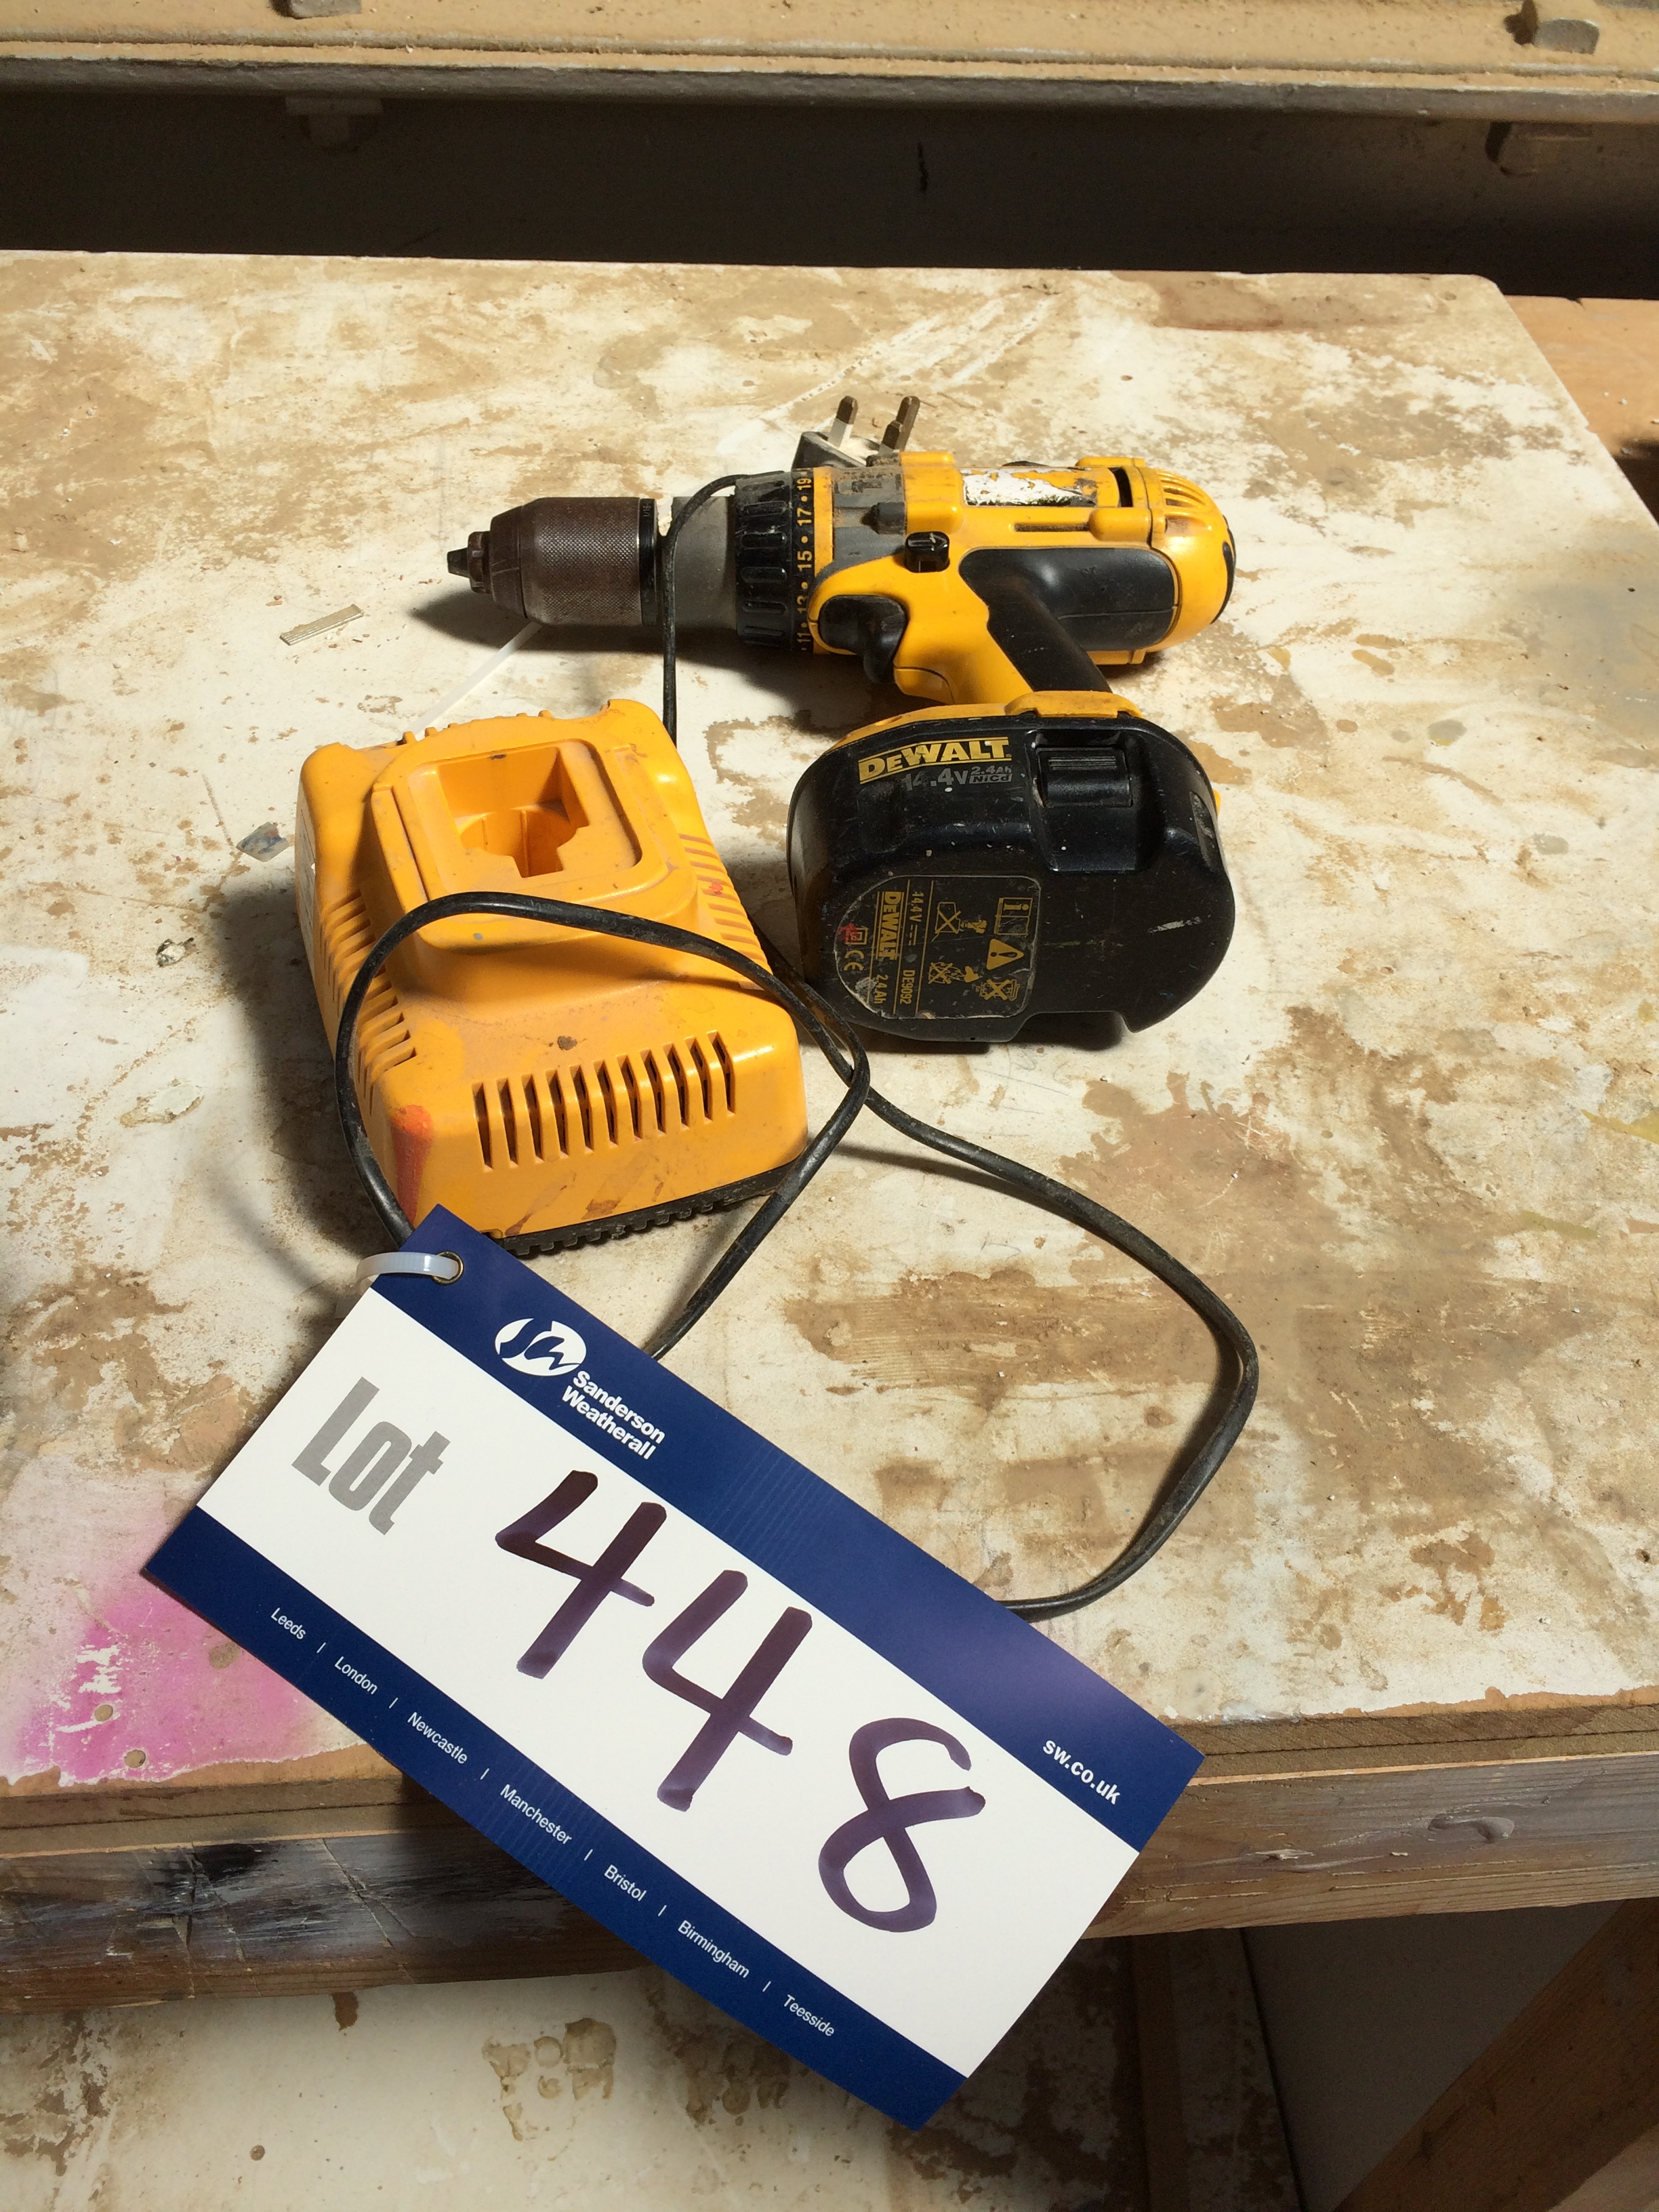 Dewalt Cordless Drill c/w Charger (please note - this lot ...